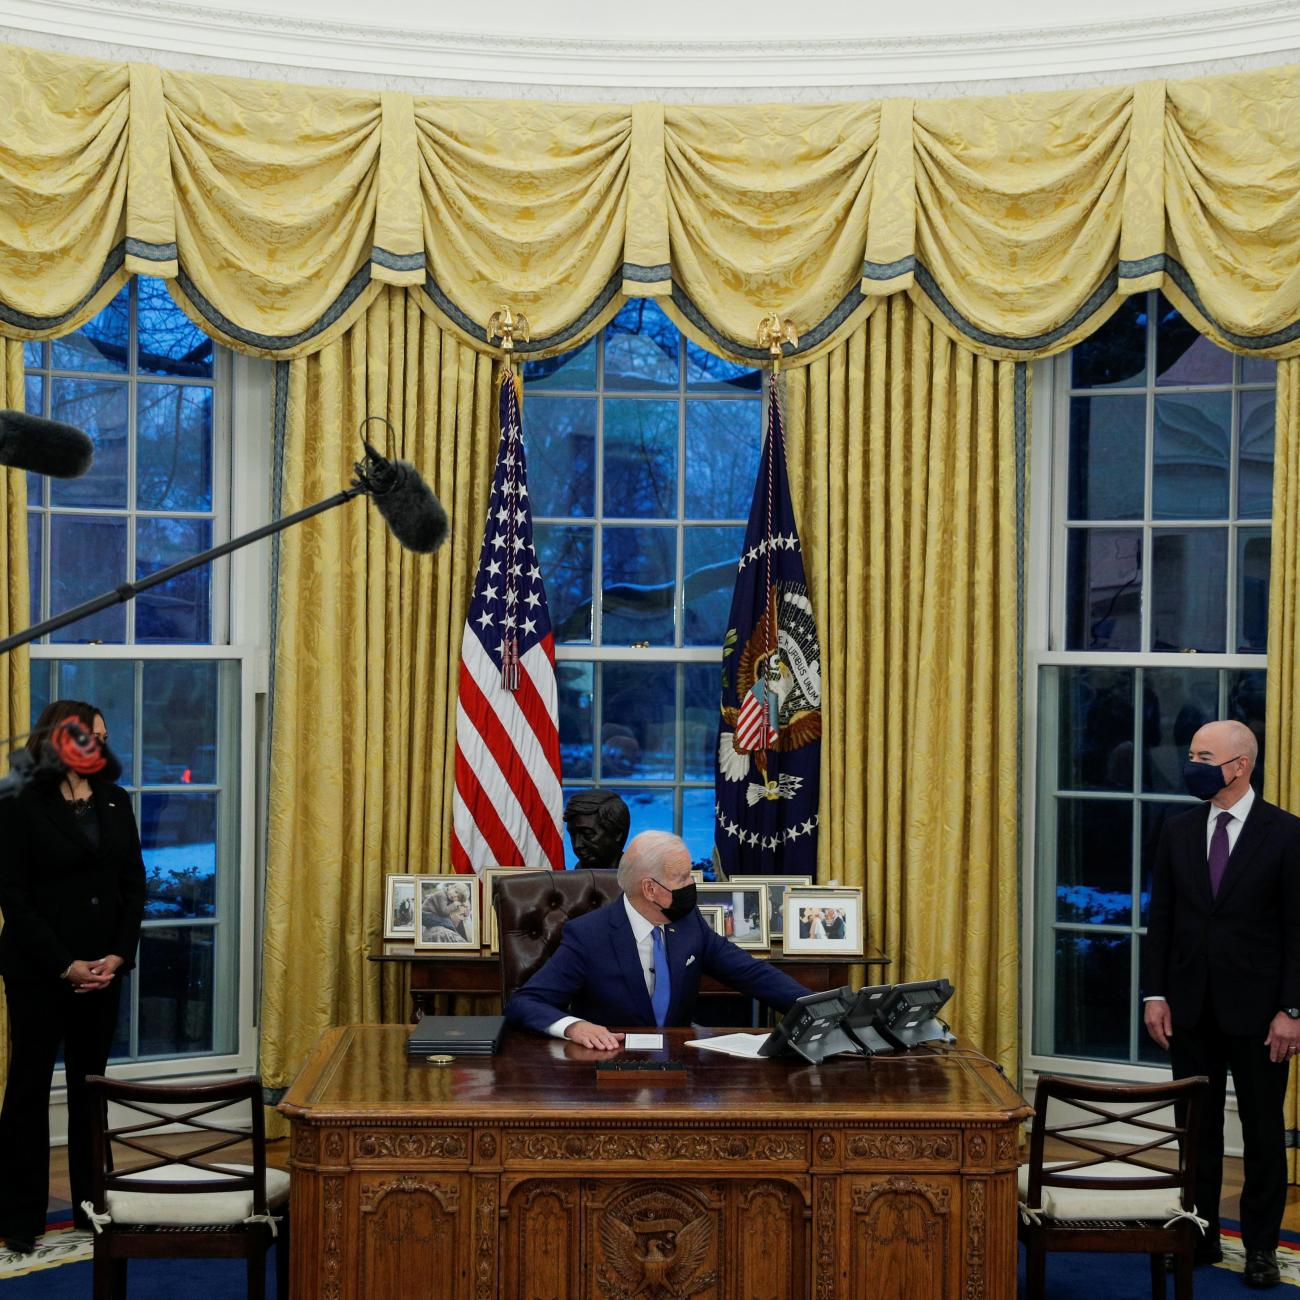 U.S. President Joe Biden looks on as he prepares to sign executive orders at the White House in Washington, U.S., February 2, 2021.